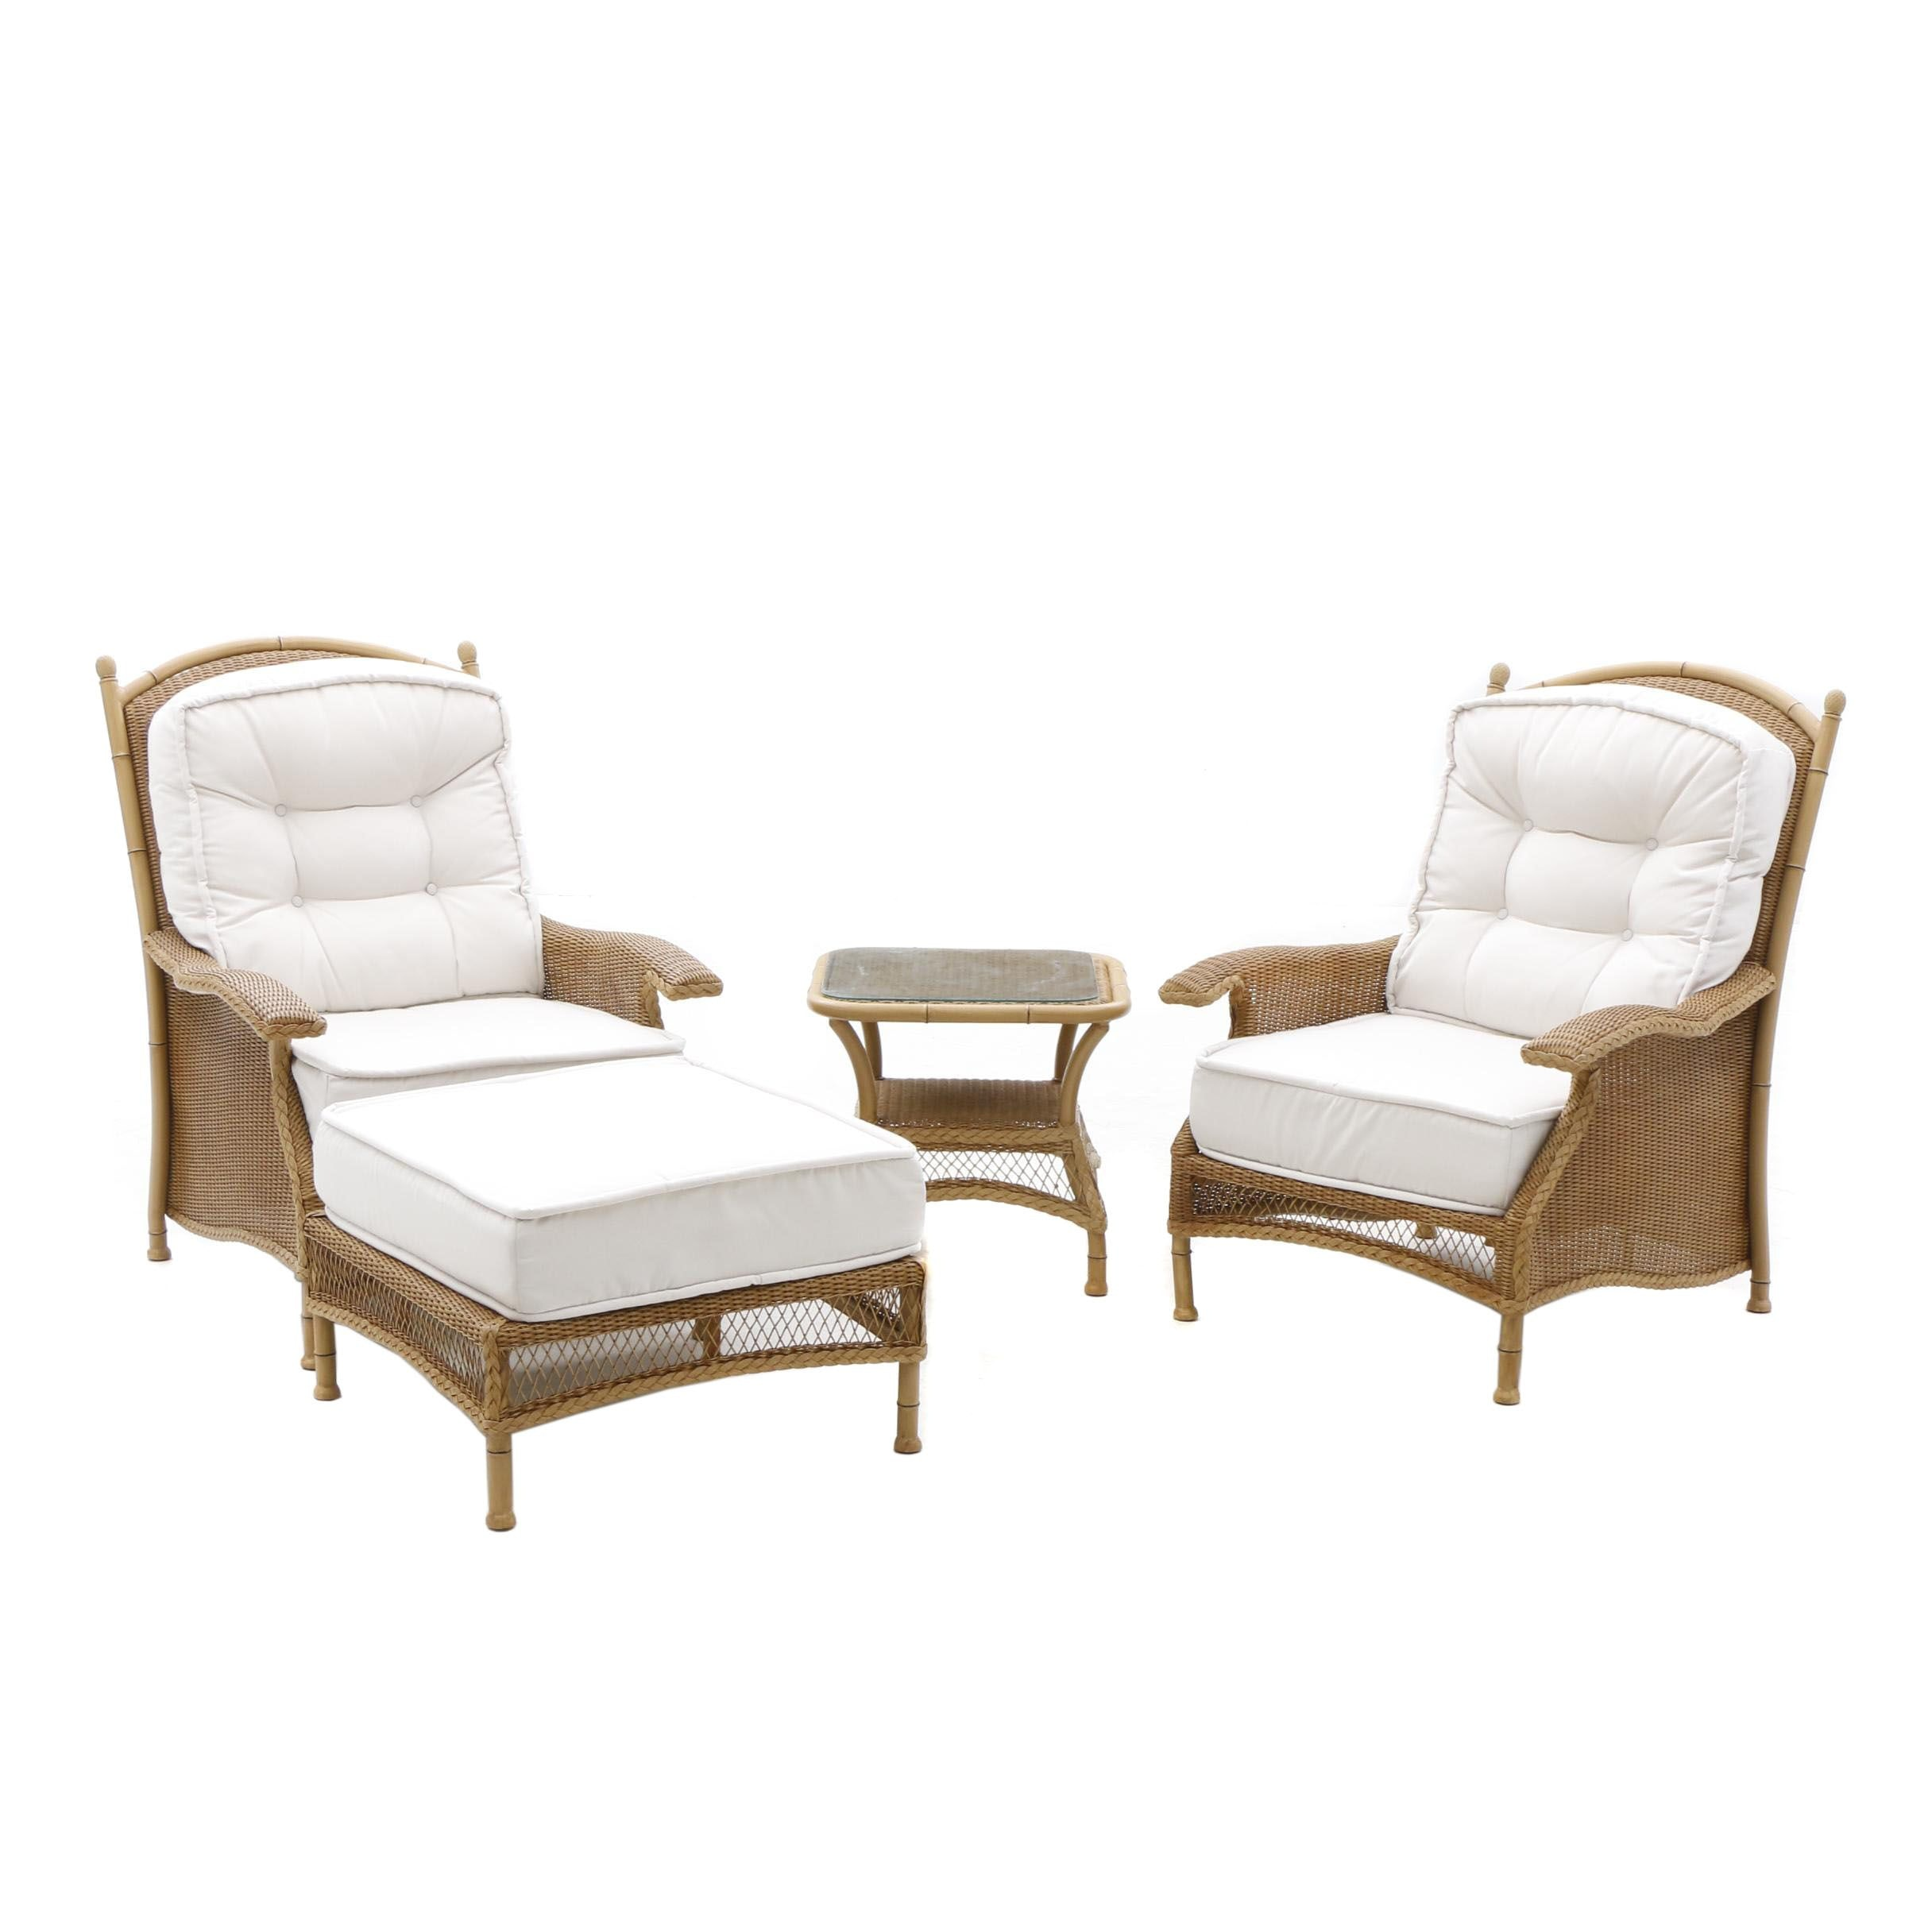 Lloyd Loom Woven Wicker Patio Arm Chairs, Table and Ottoman by Lloyd Flanders